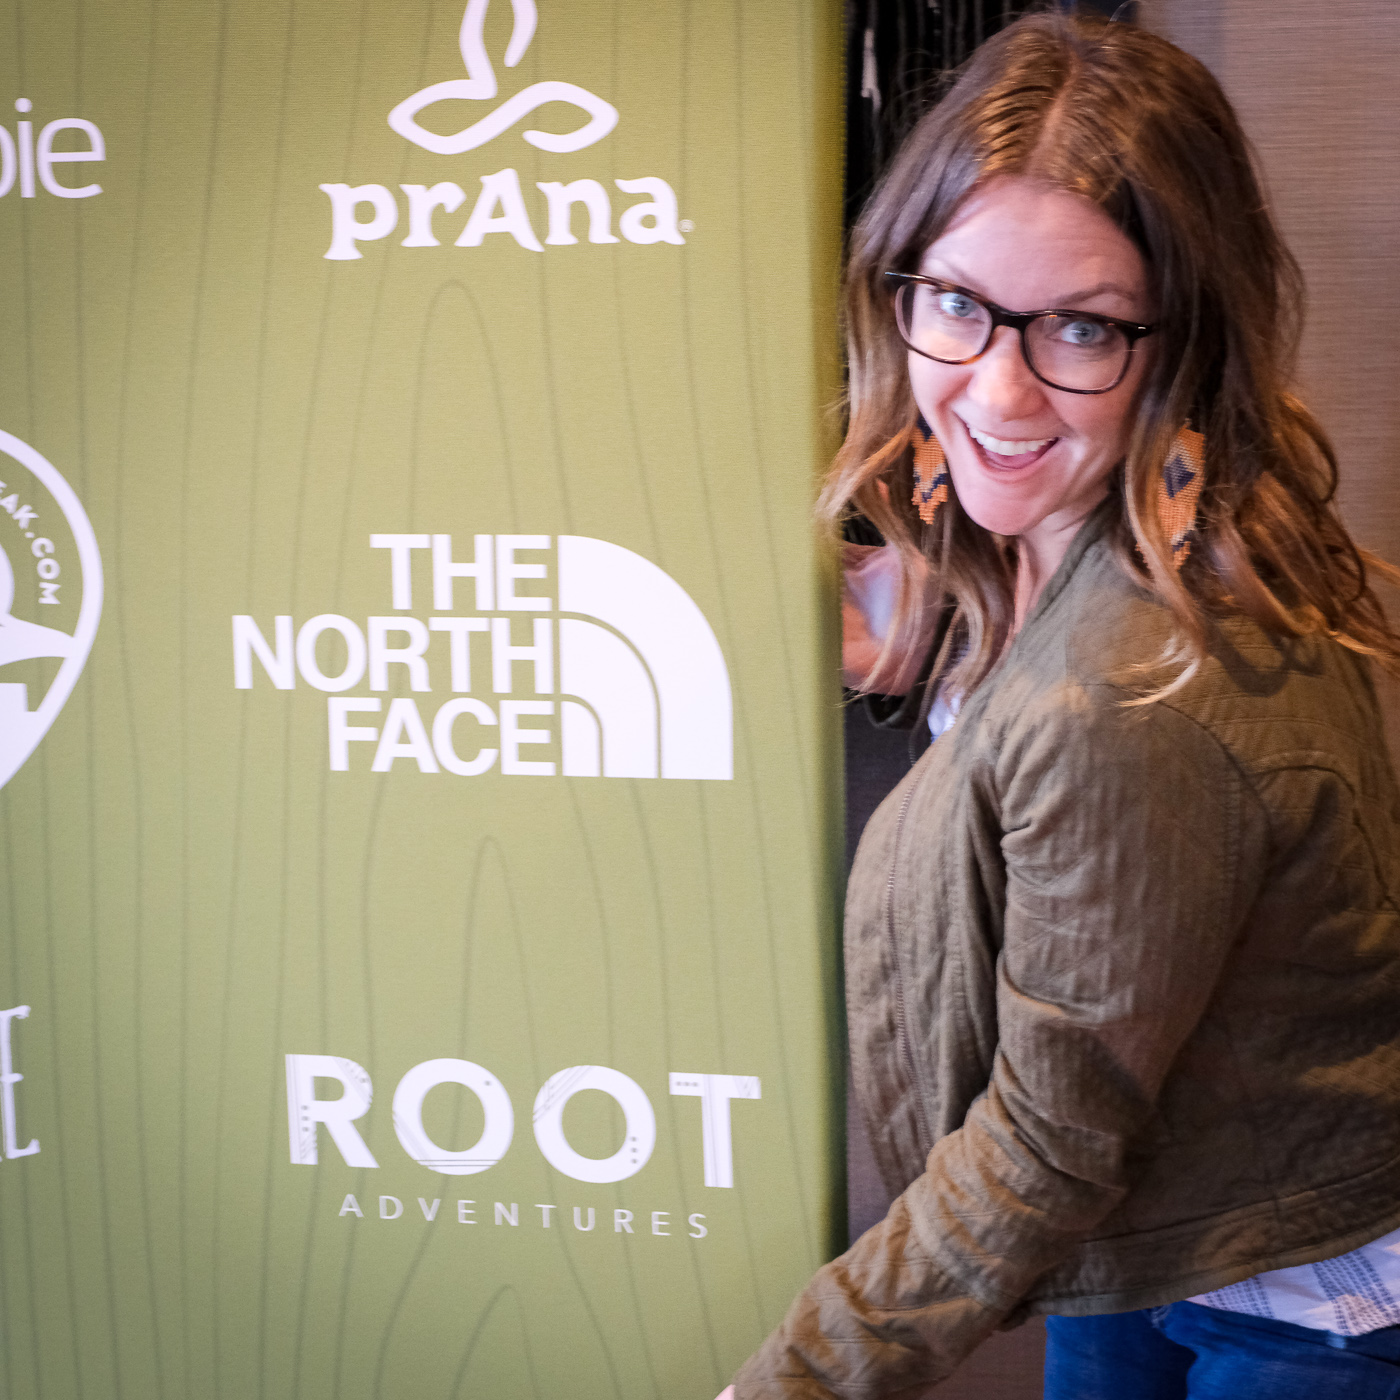 Breanne, Root Founder, celebrating sharing the stage with such amazing brands!